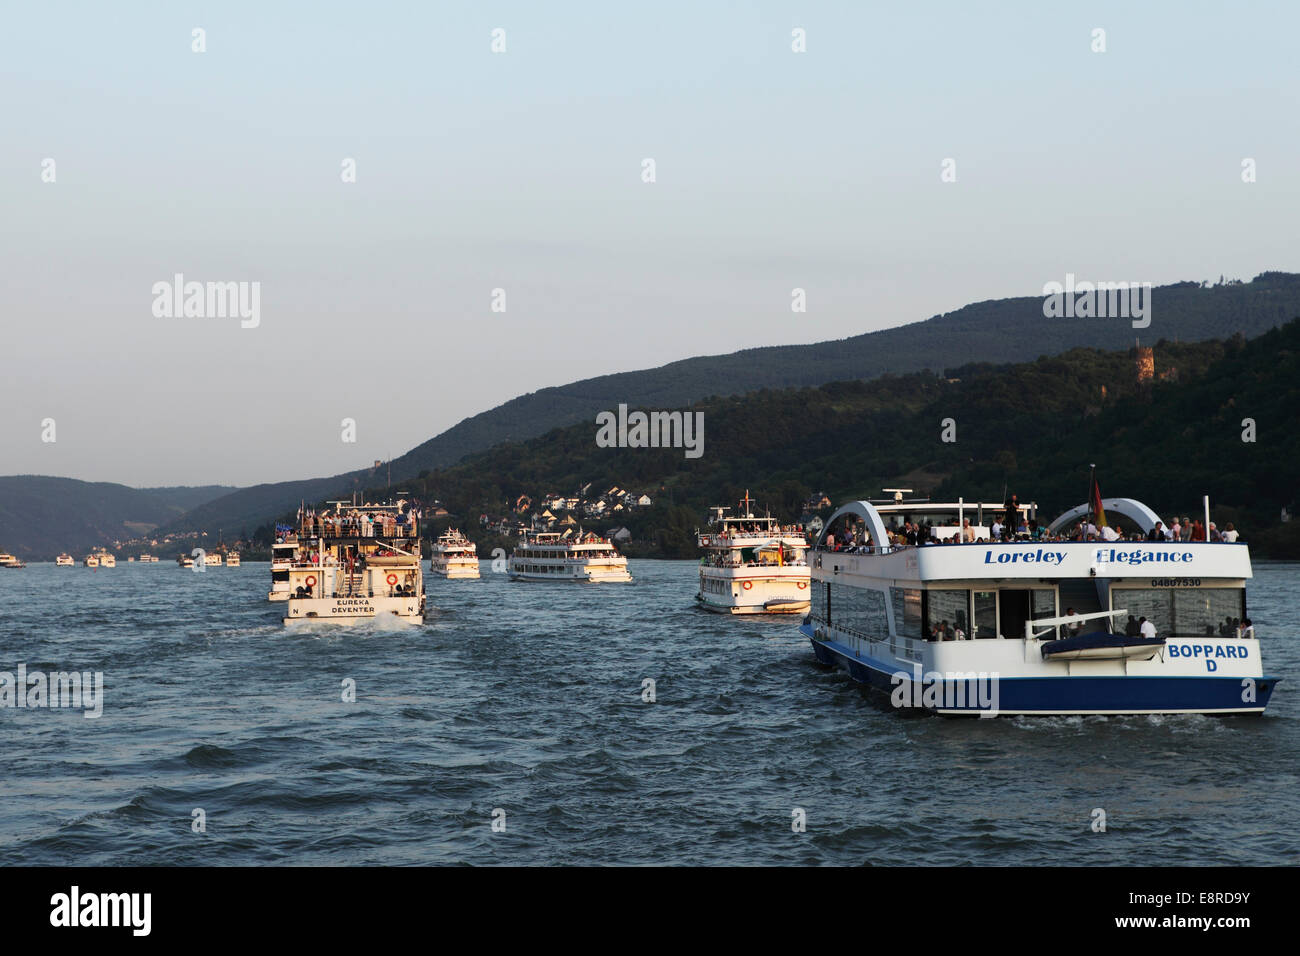 Ships cruising on the River Rhine in Germany. - Stock Image